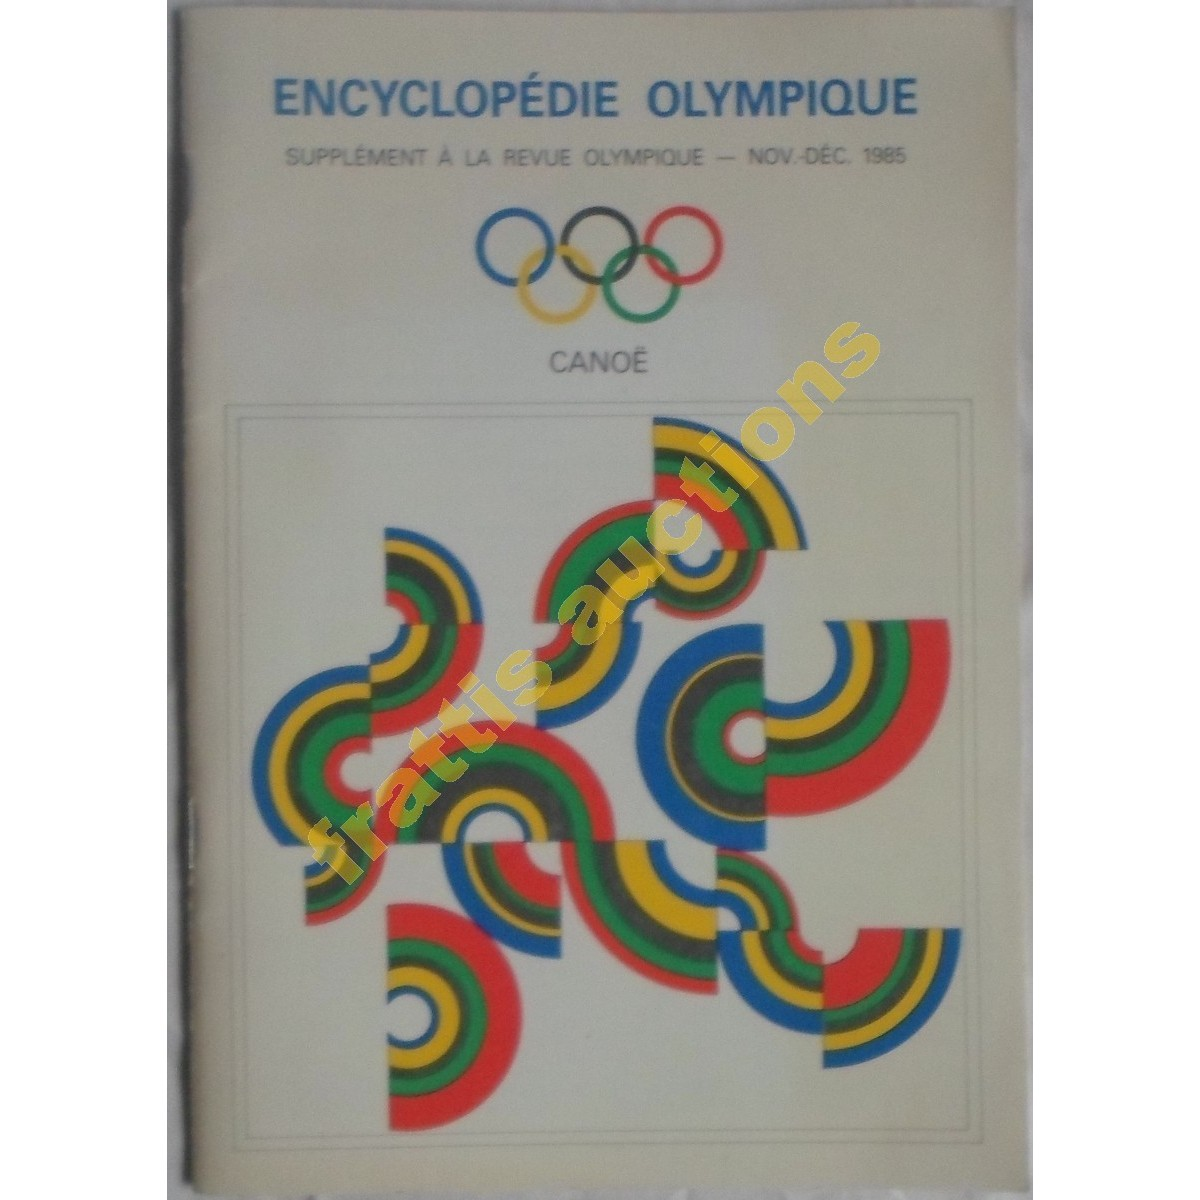 Encyclopedie Olympique, Canoe, Νοεμ.-Δεκ. 1985